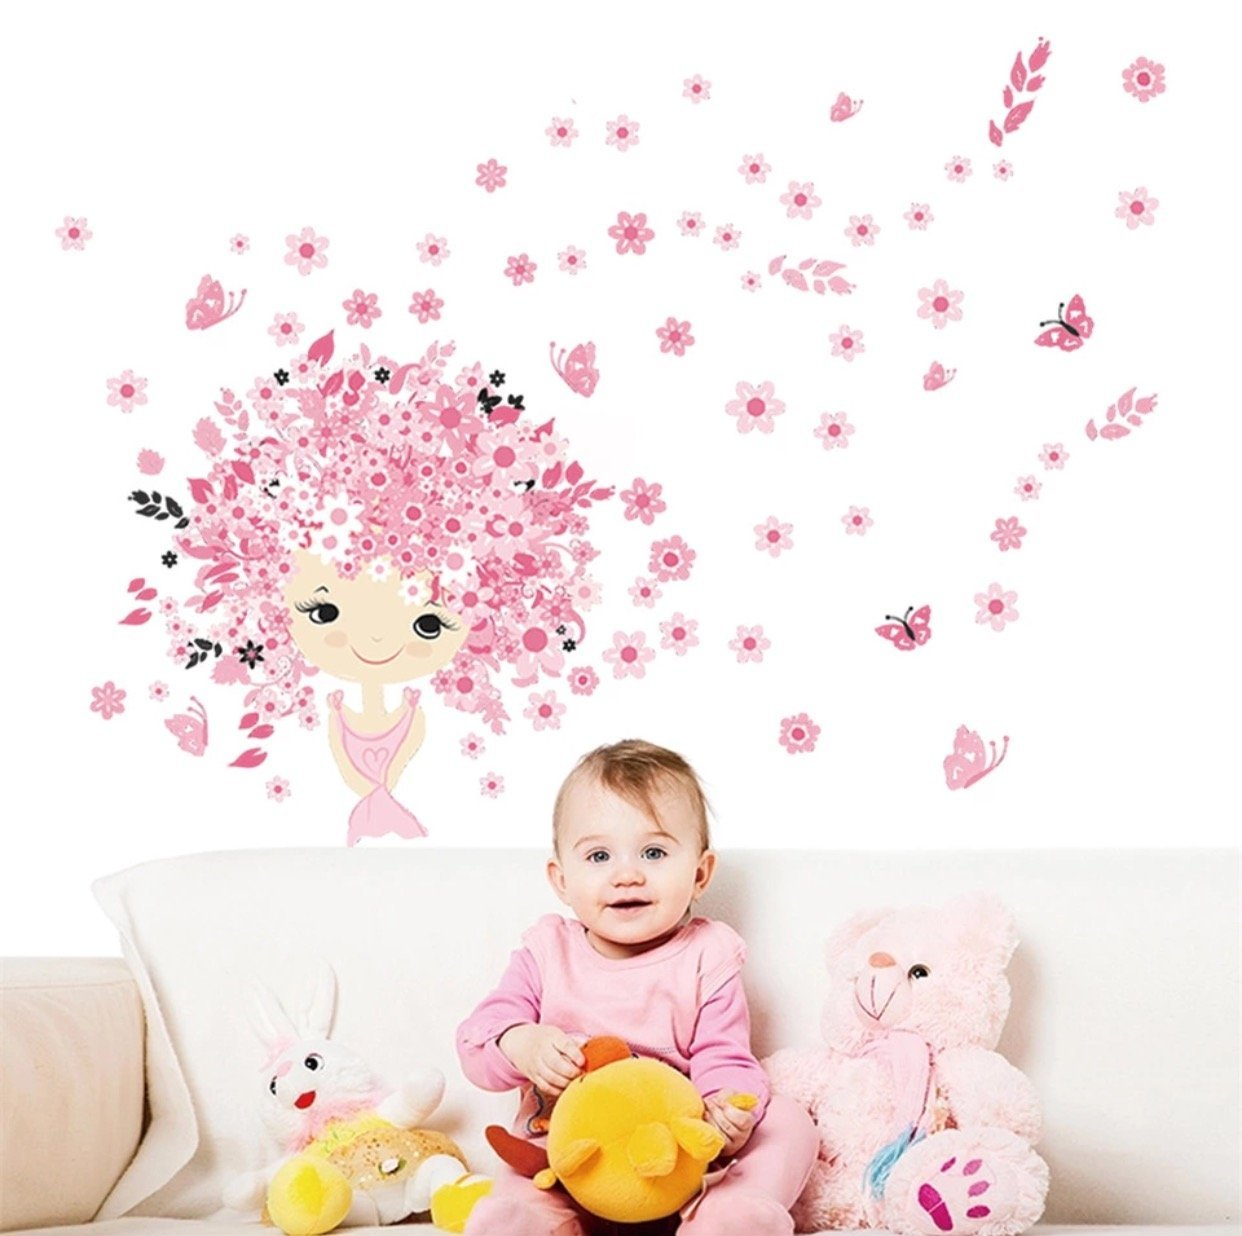 Colorful flower Flower Fairy pink cute baby girl Mermaid butterfly home decals wall sticker for kids child room nursery wall art Sticker world